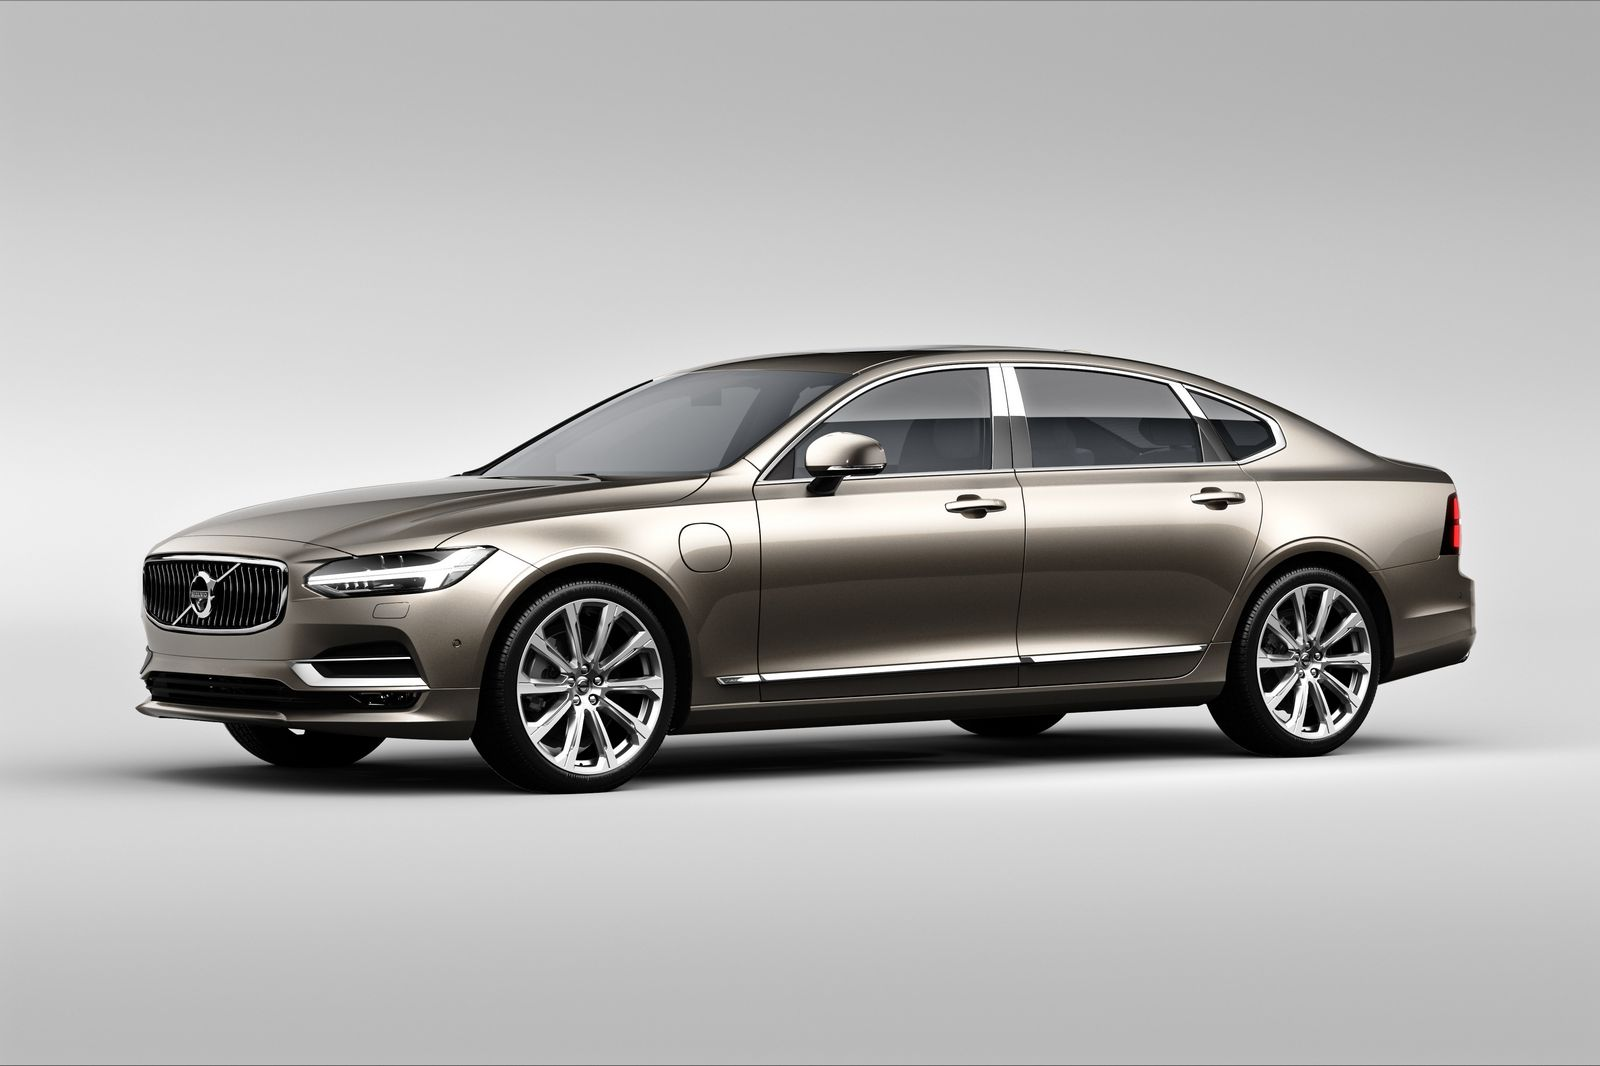 2015 - [Volvo] S90 - Page 14 Volvo%2BS90%2BChina%2B15